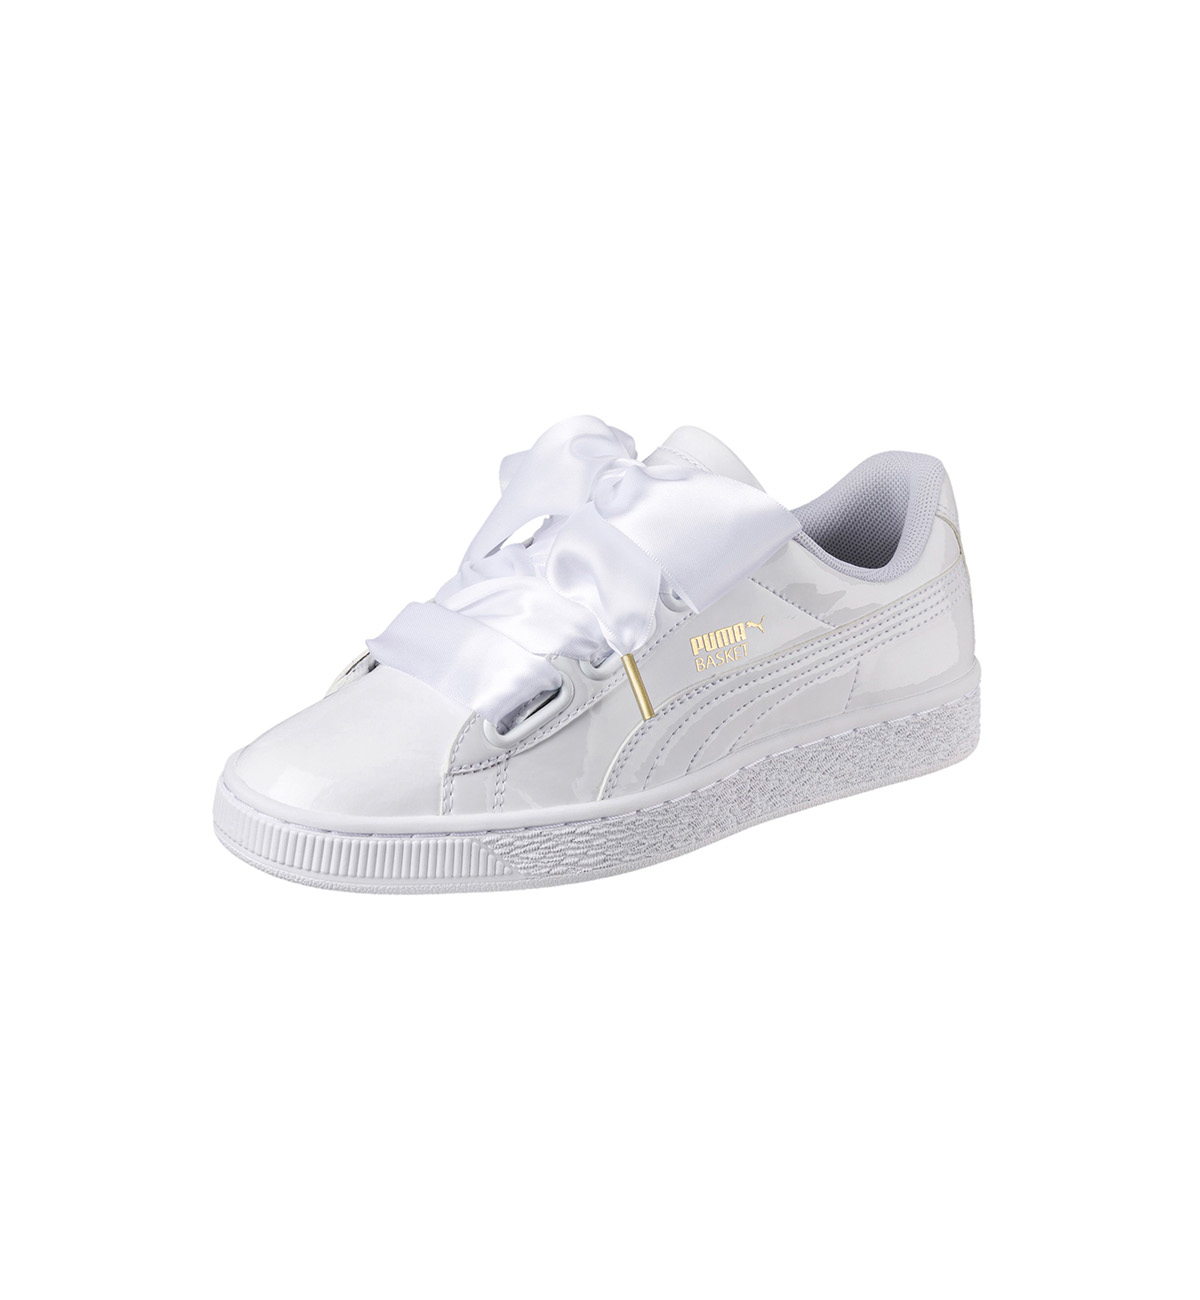 Puma White Bow Sneakers